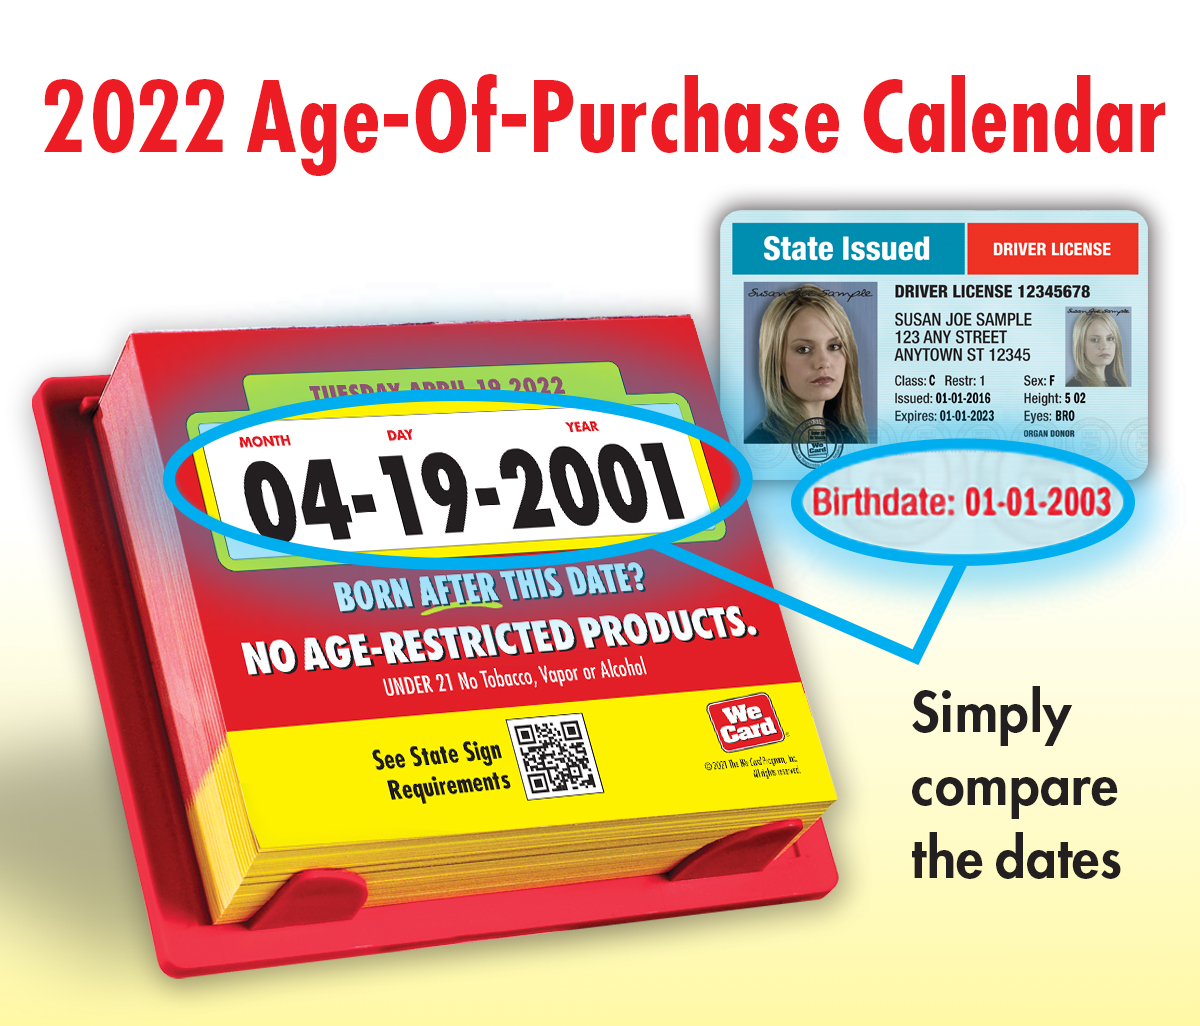 2022 Age-Of-Purchase Calendar